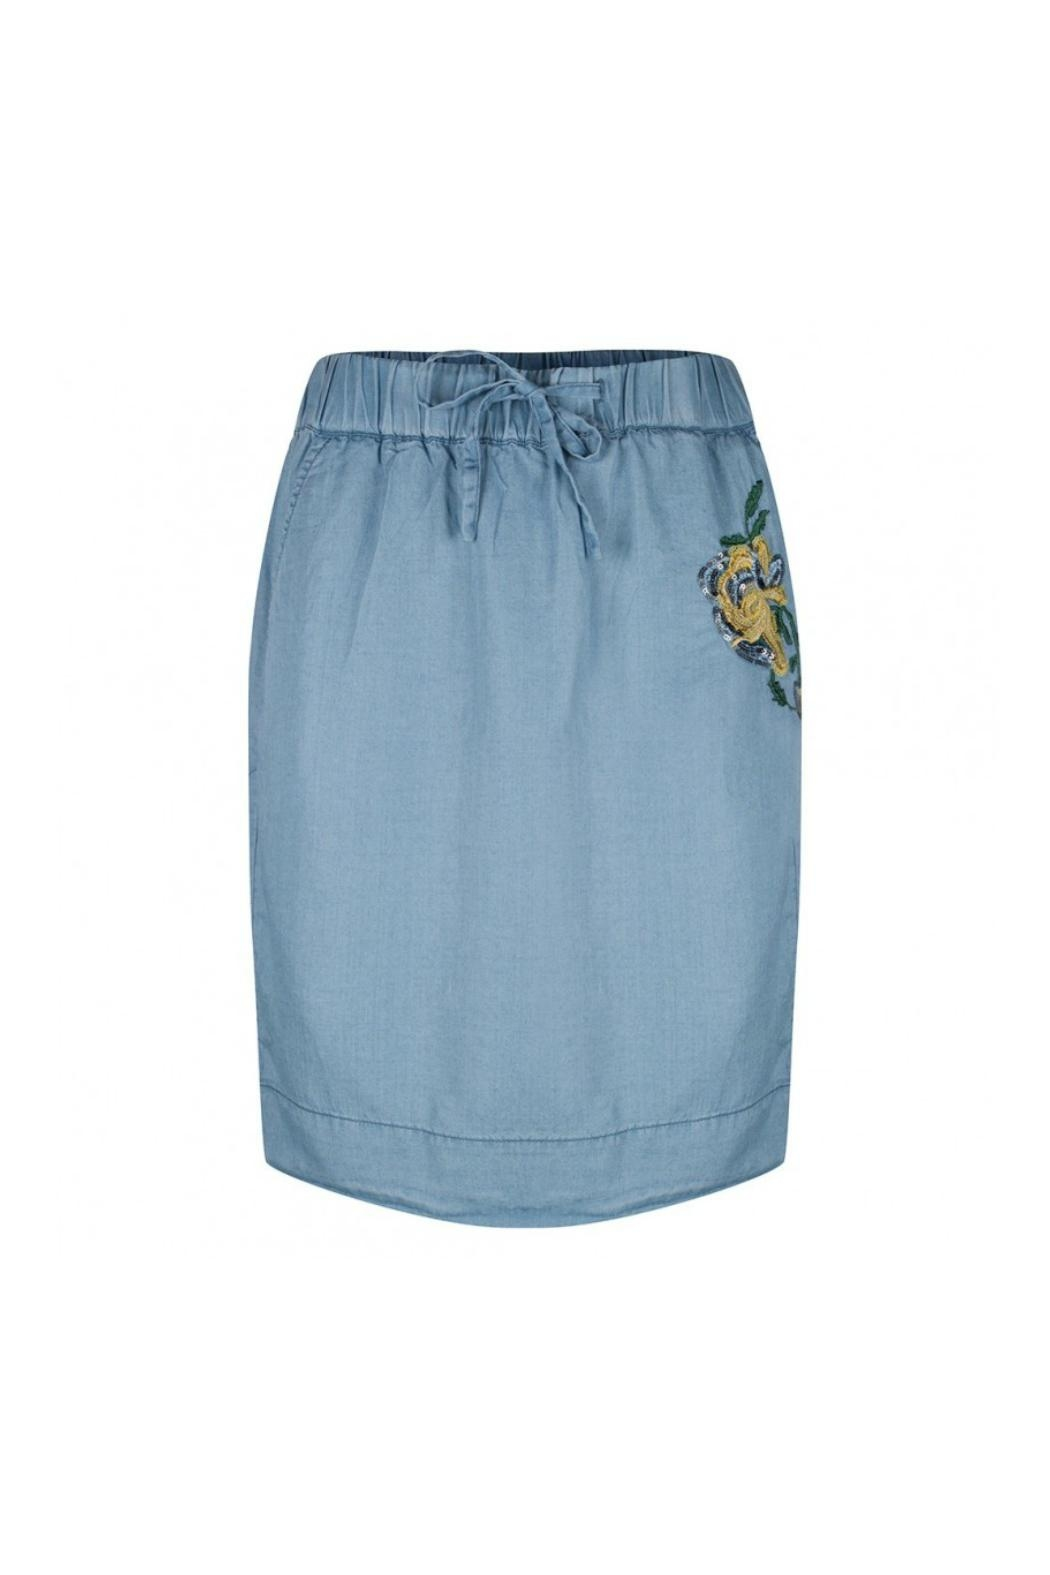 EsQualo Skirt With Embroidery - Main Image